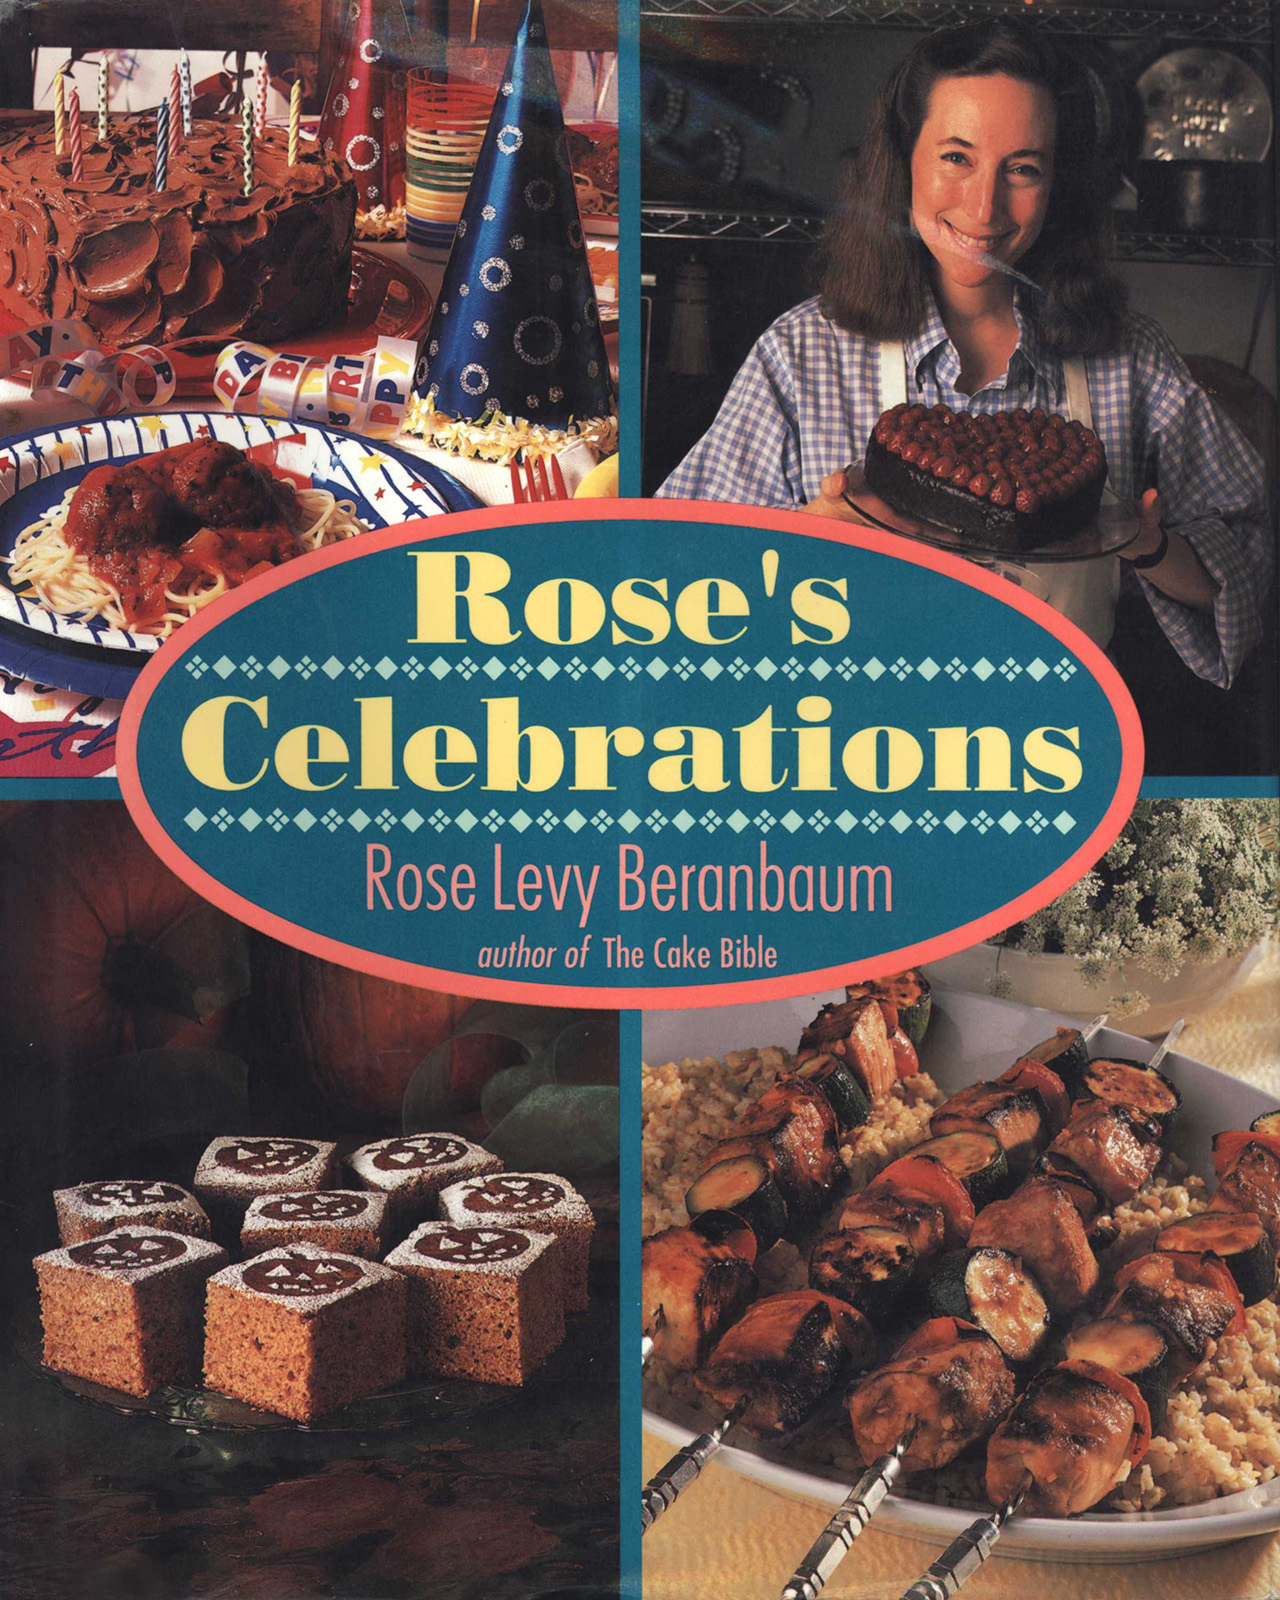 Rose's Celebrations    is a featured title on ckbk